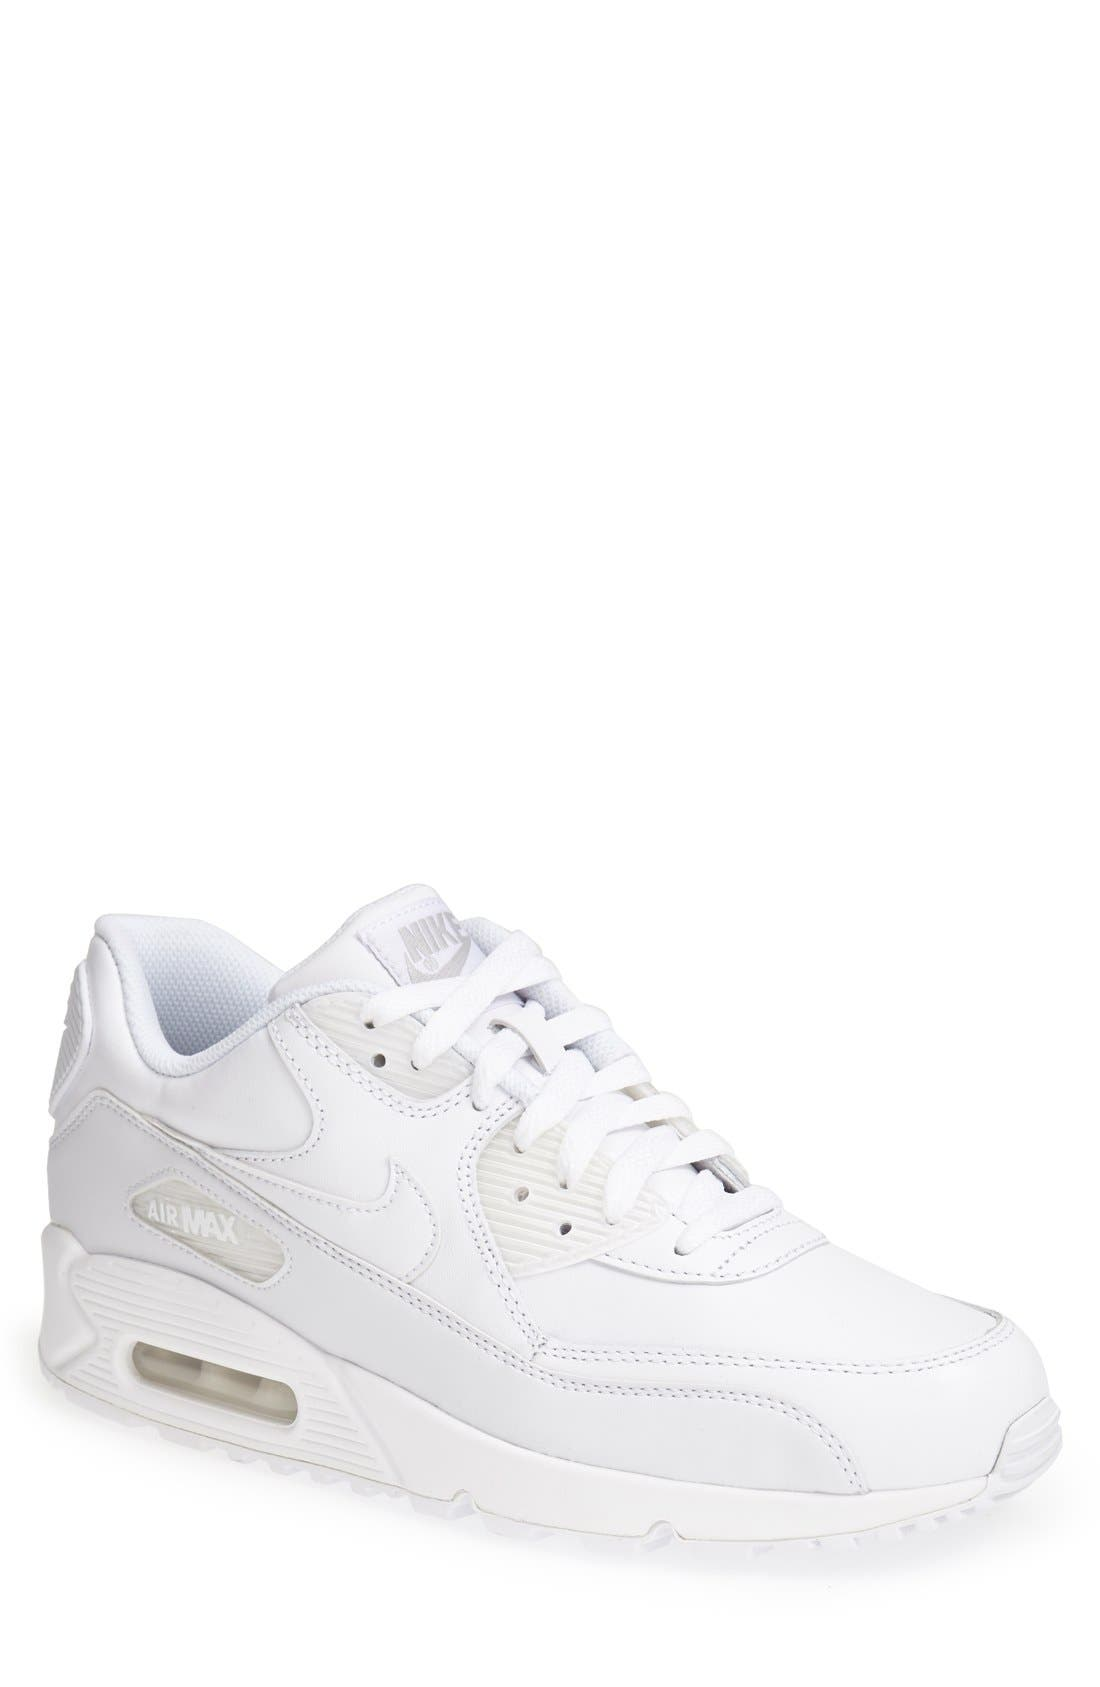 Alternate Image 1 Selected - Nike 'Air Max 90' Leather Sneaker (Men)